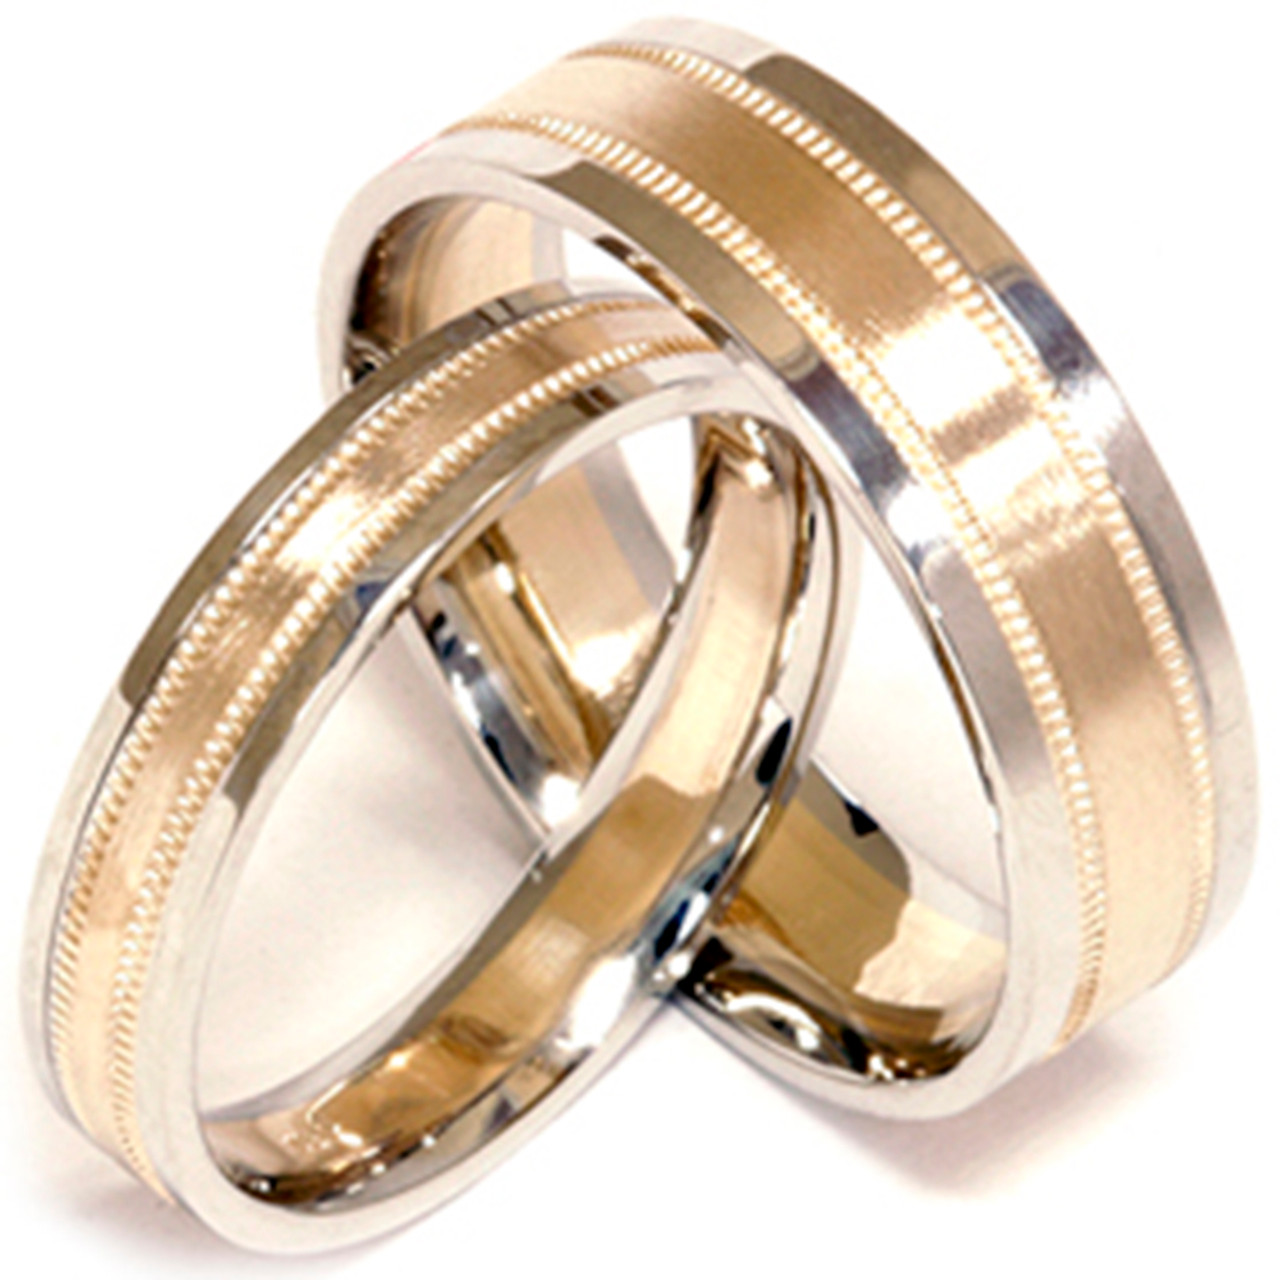 fit rose unique band gold chart brushed comfort wedding engagment ring products bands size conversion tungsten black sml